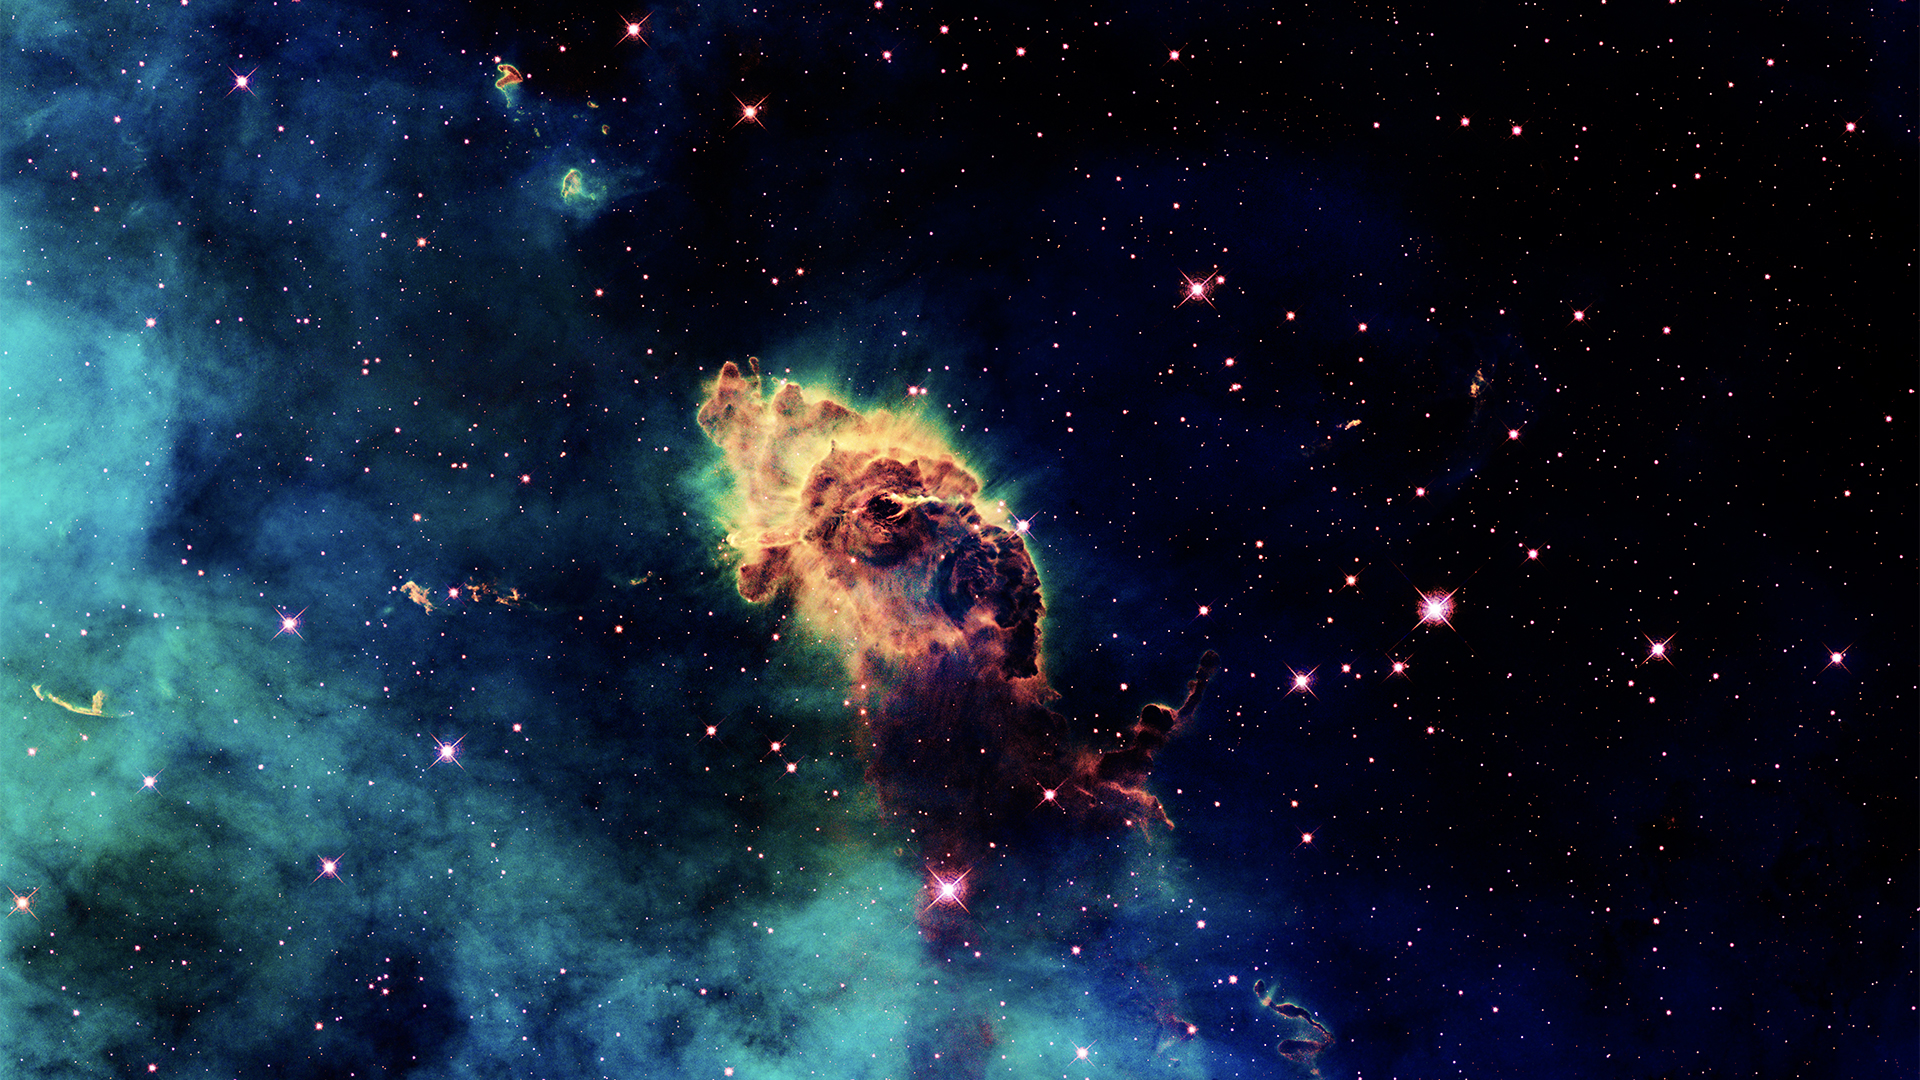 hd-nebula-wallpapers | wallpaper.wiki